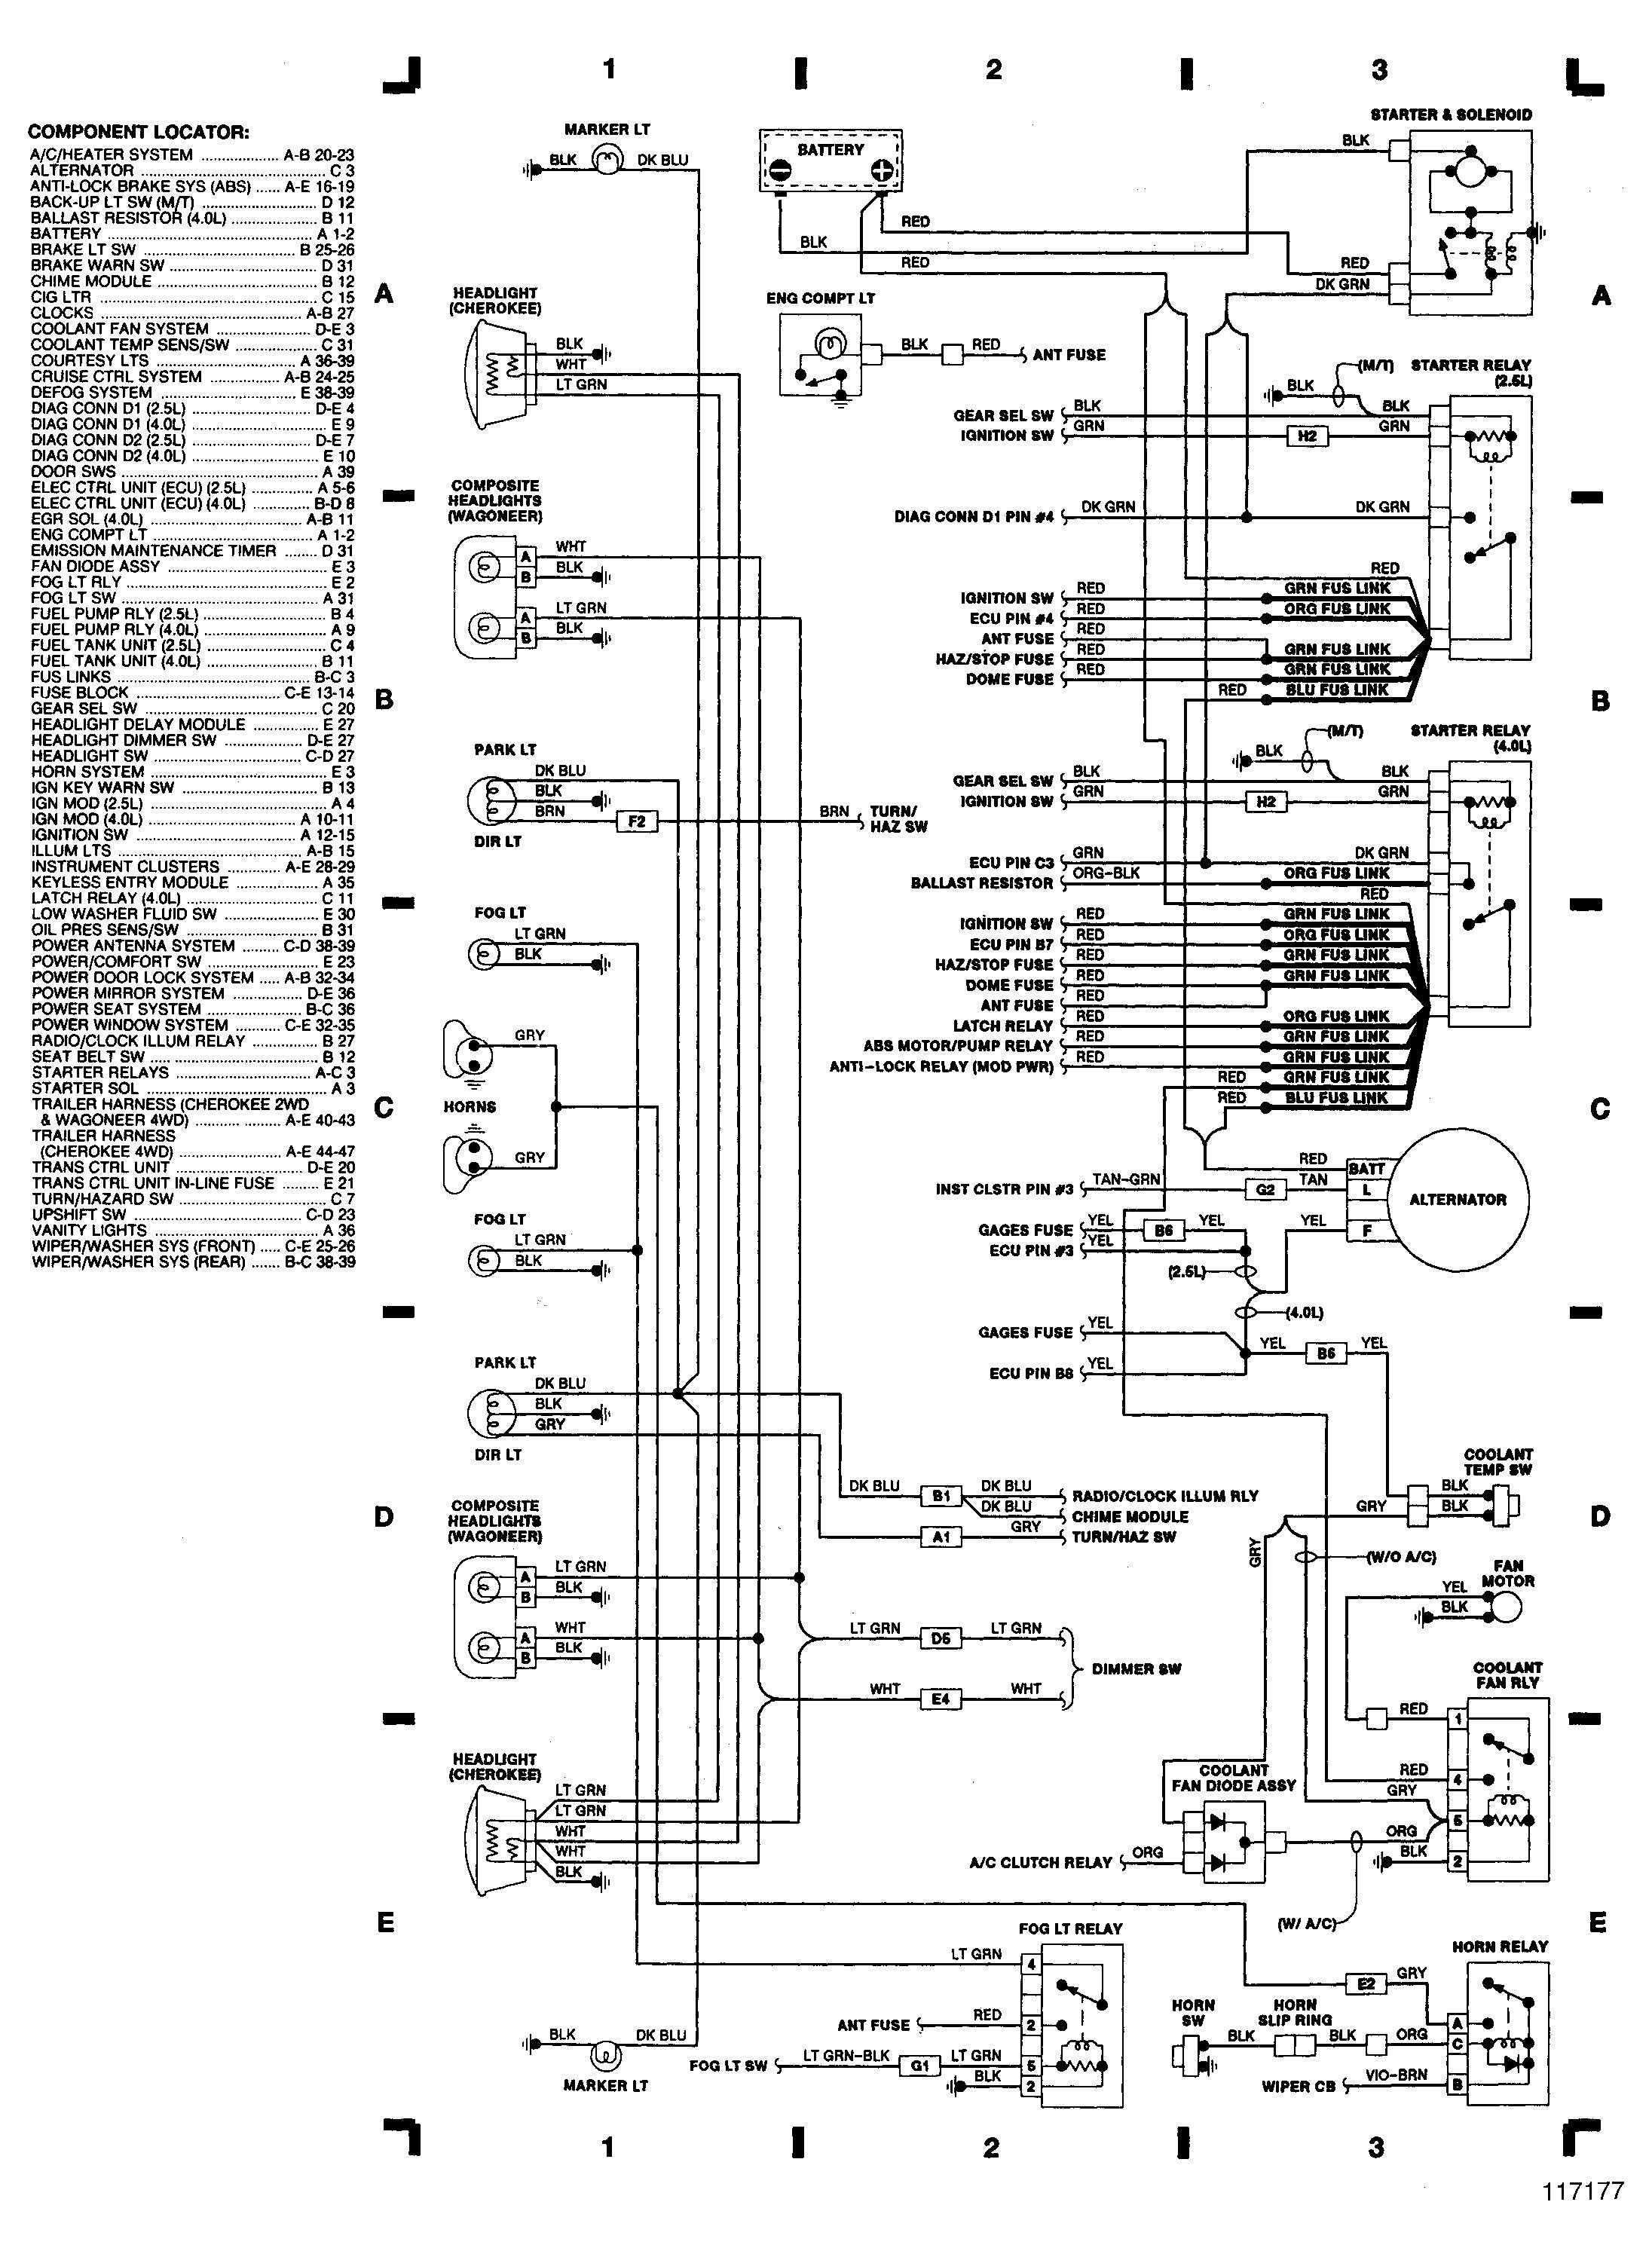 Jeep Commander Wiring Diagram from i.pinimg.com